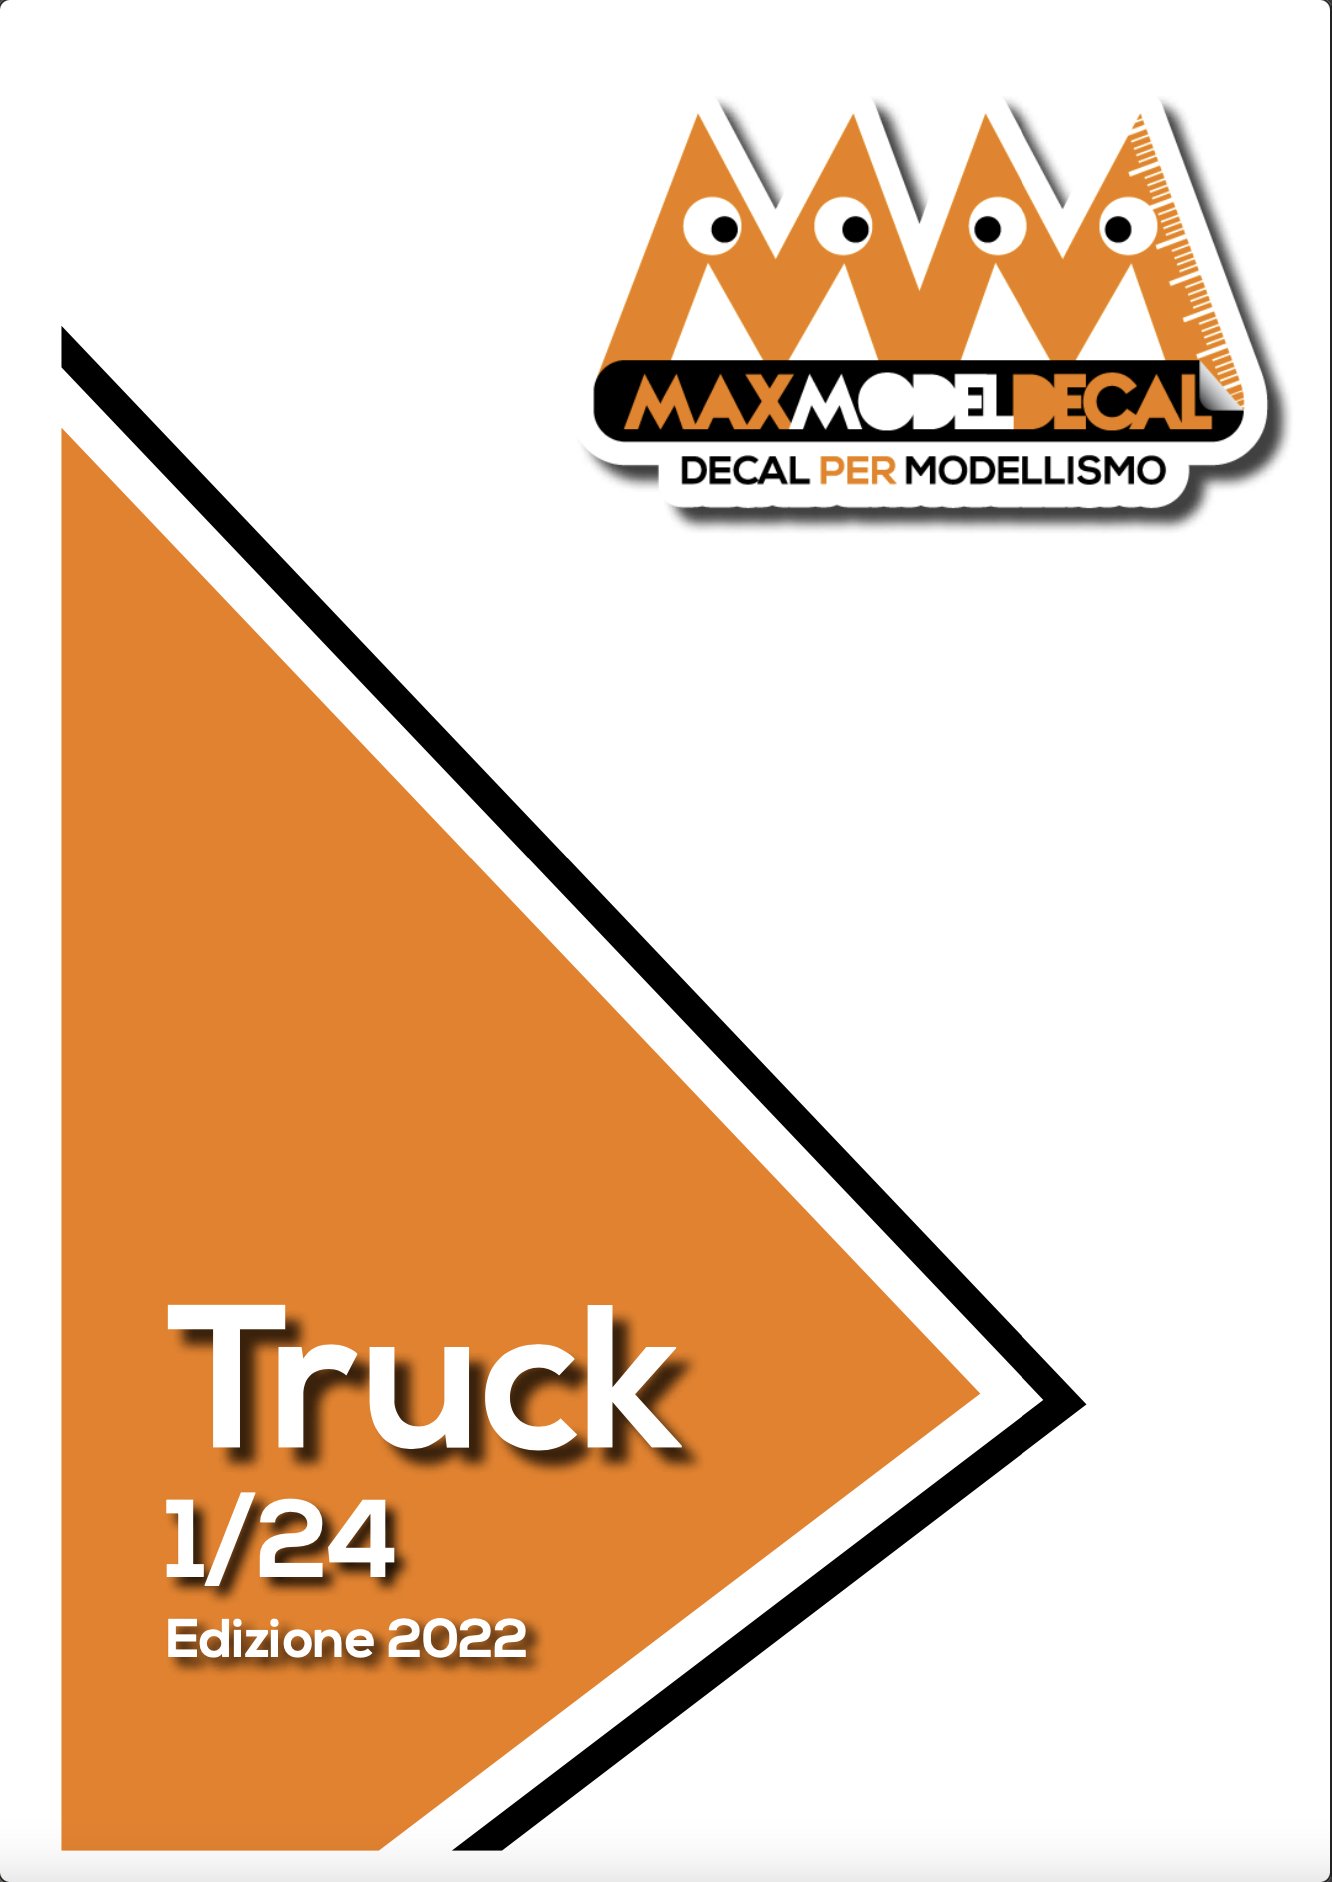 Truck_24_2021.png